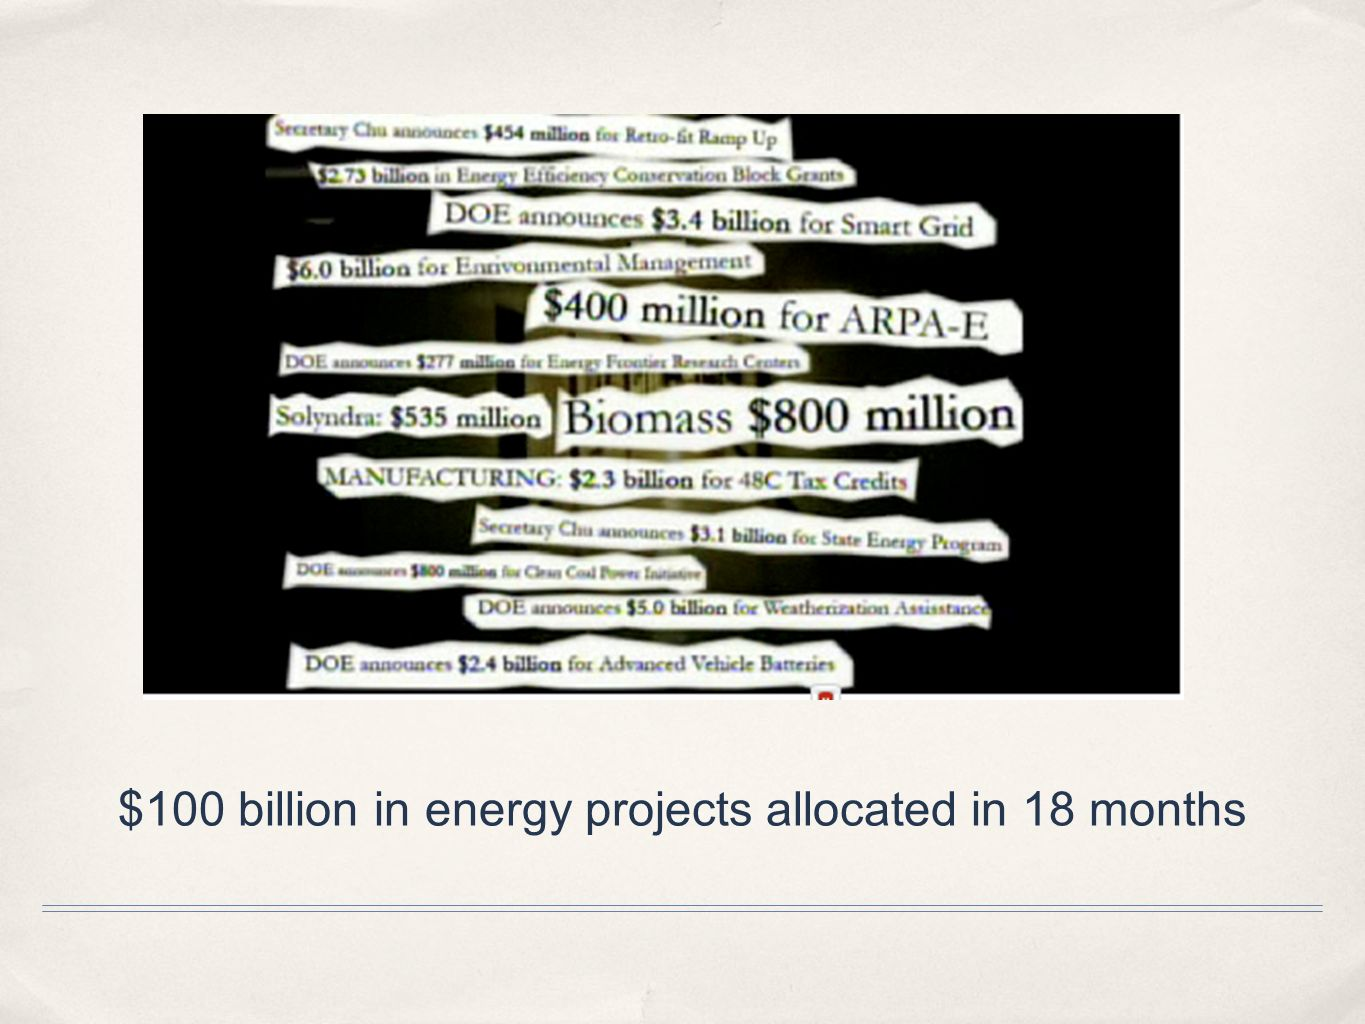 $100 billion in energy projects allocated in 18 months